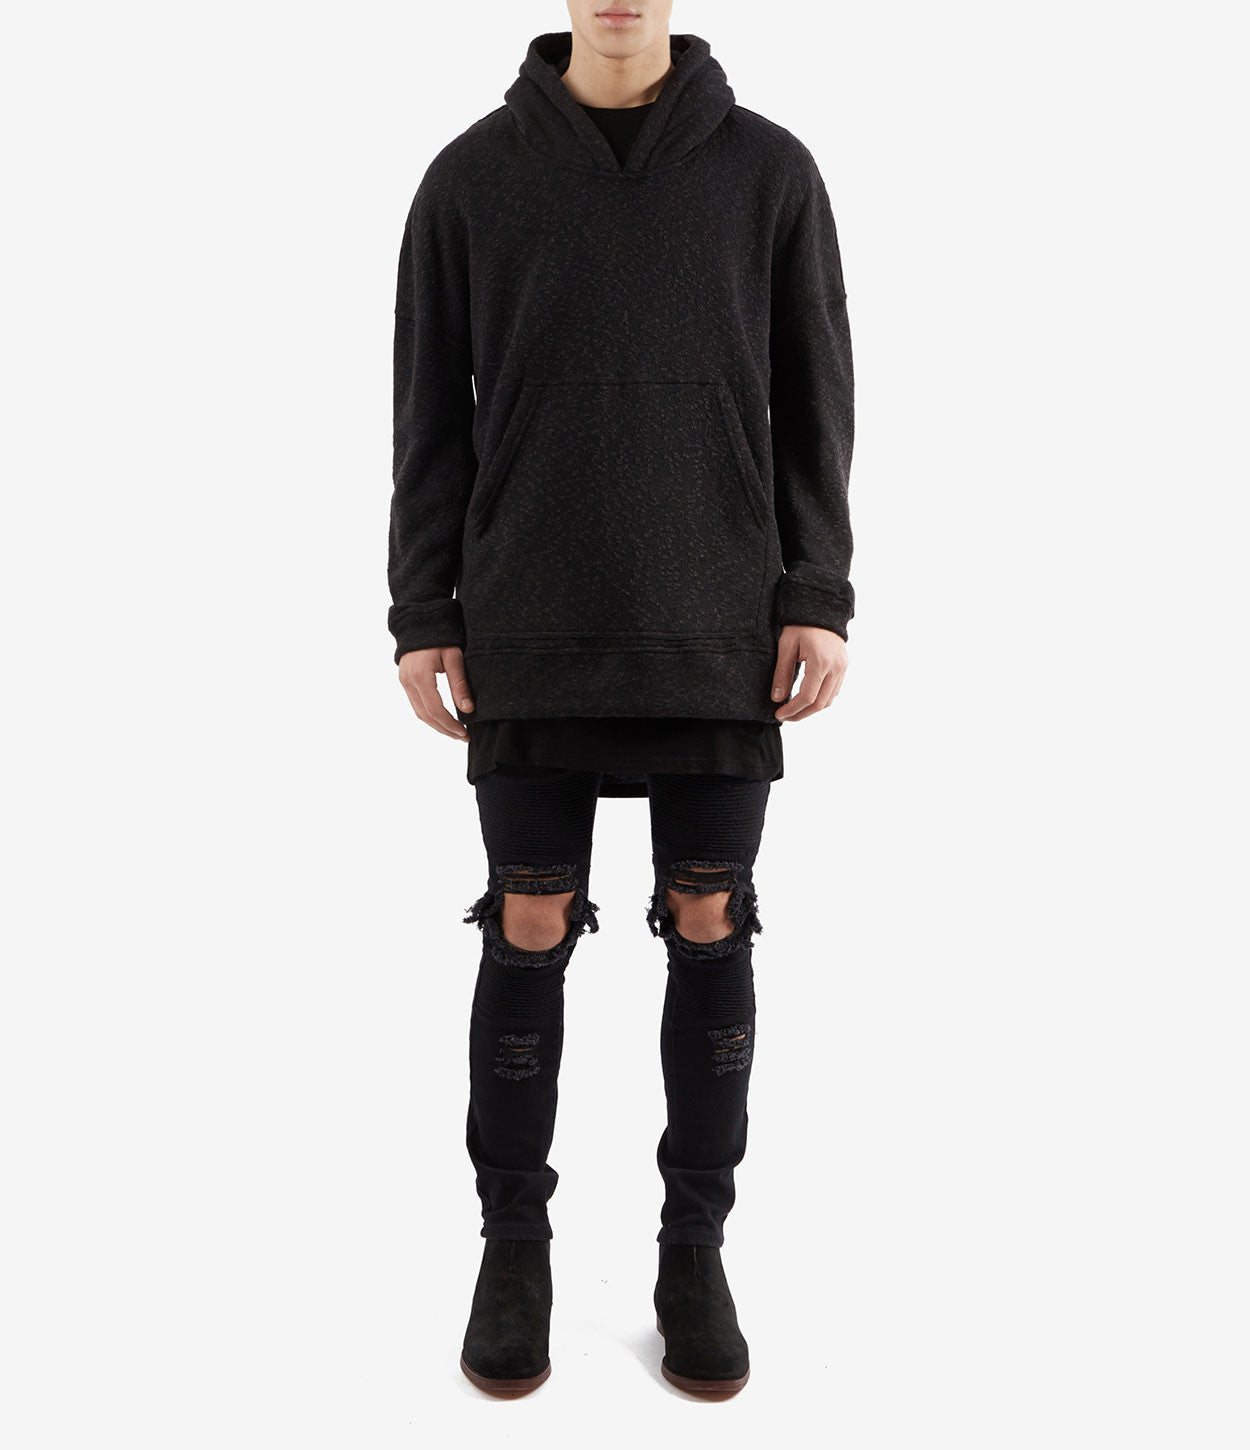 HD378 Oversized Knit Hoody - Charcoal/Black - underated london - underatedco - 2